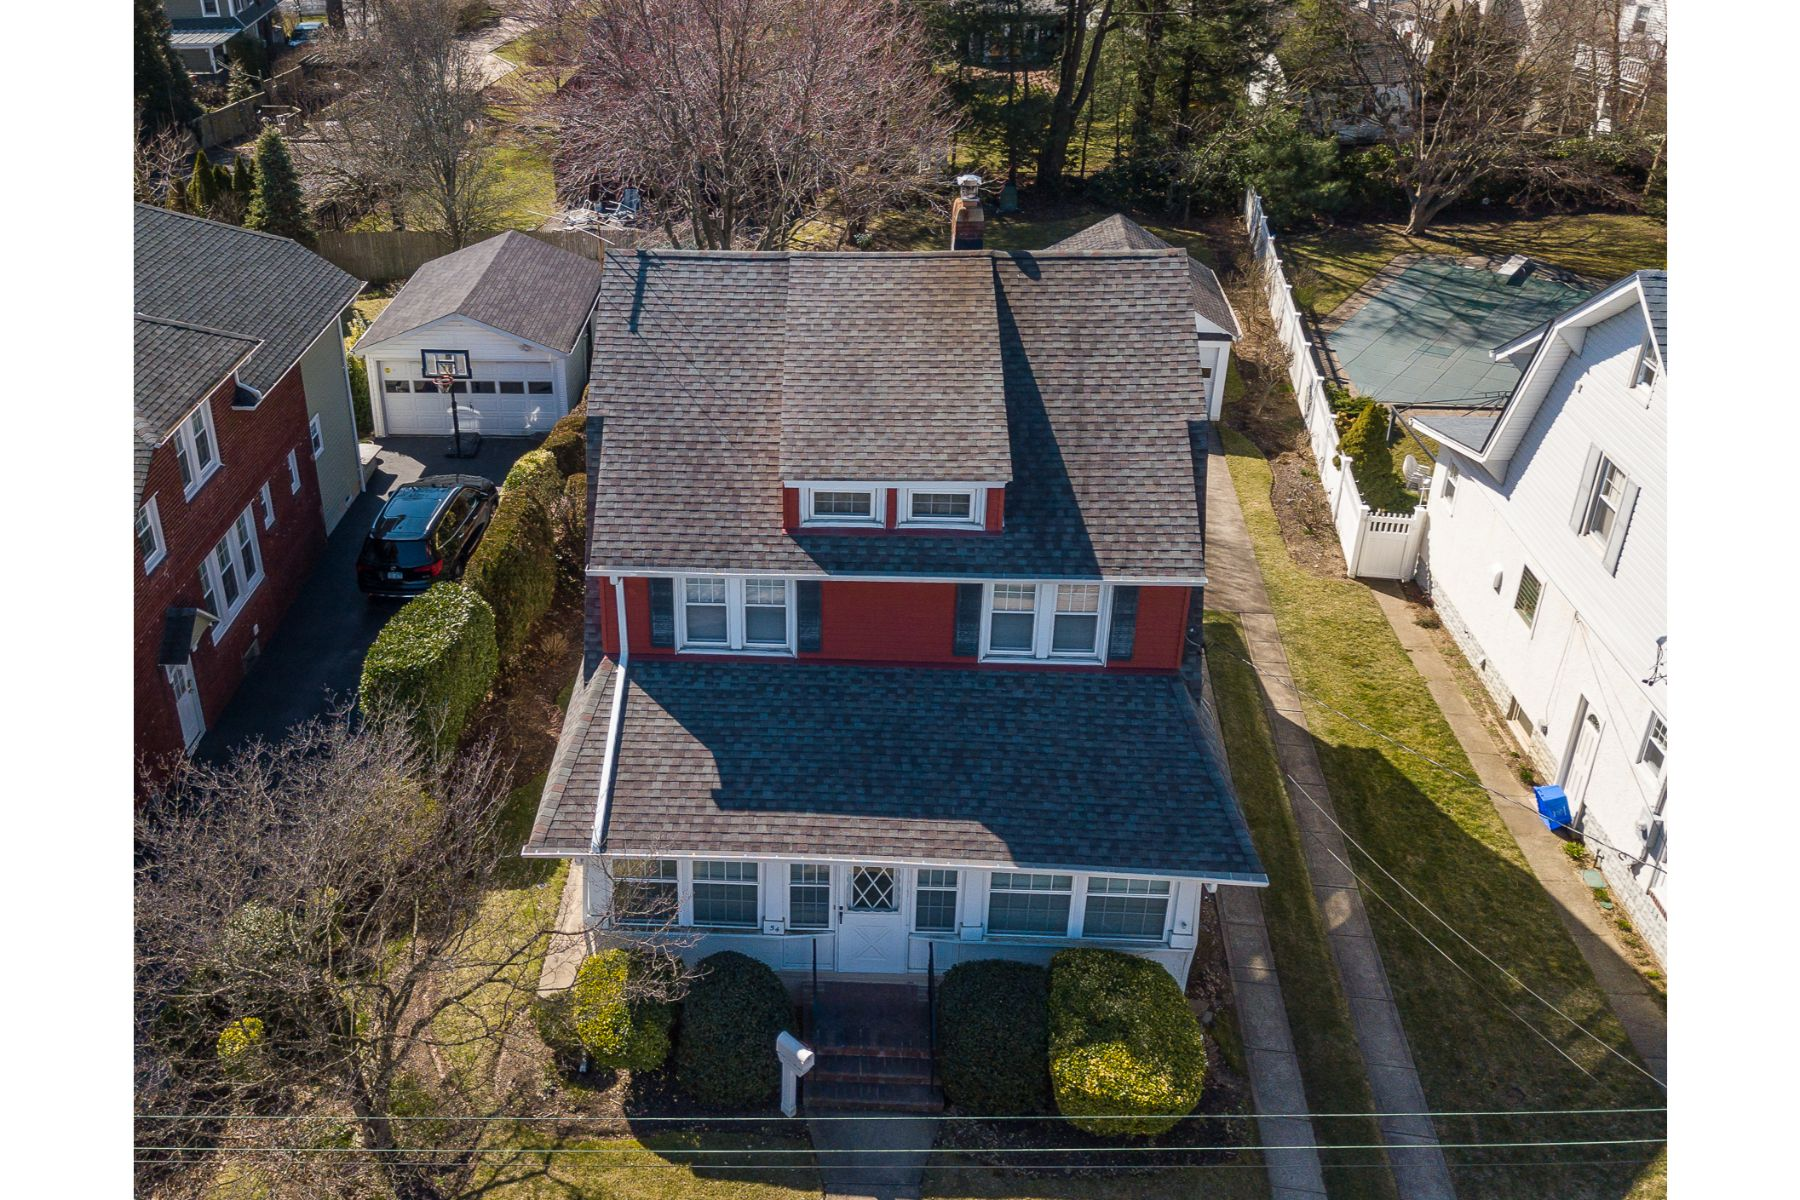 Single Family Homes for Sale at Lynbrook 54 Clinton Avenue Lynbrook, New York 11563 United States